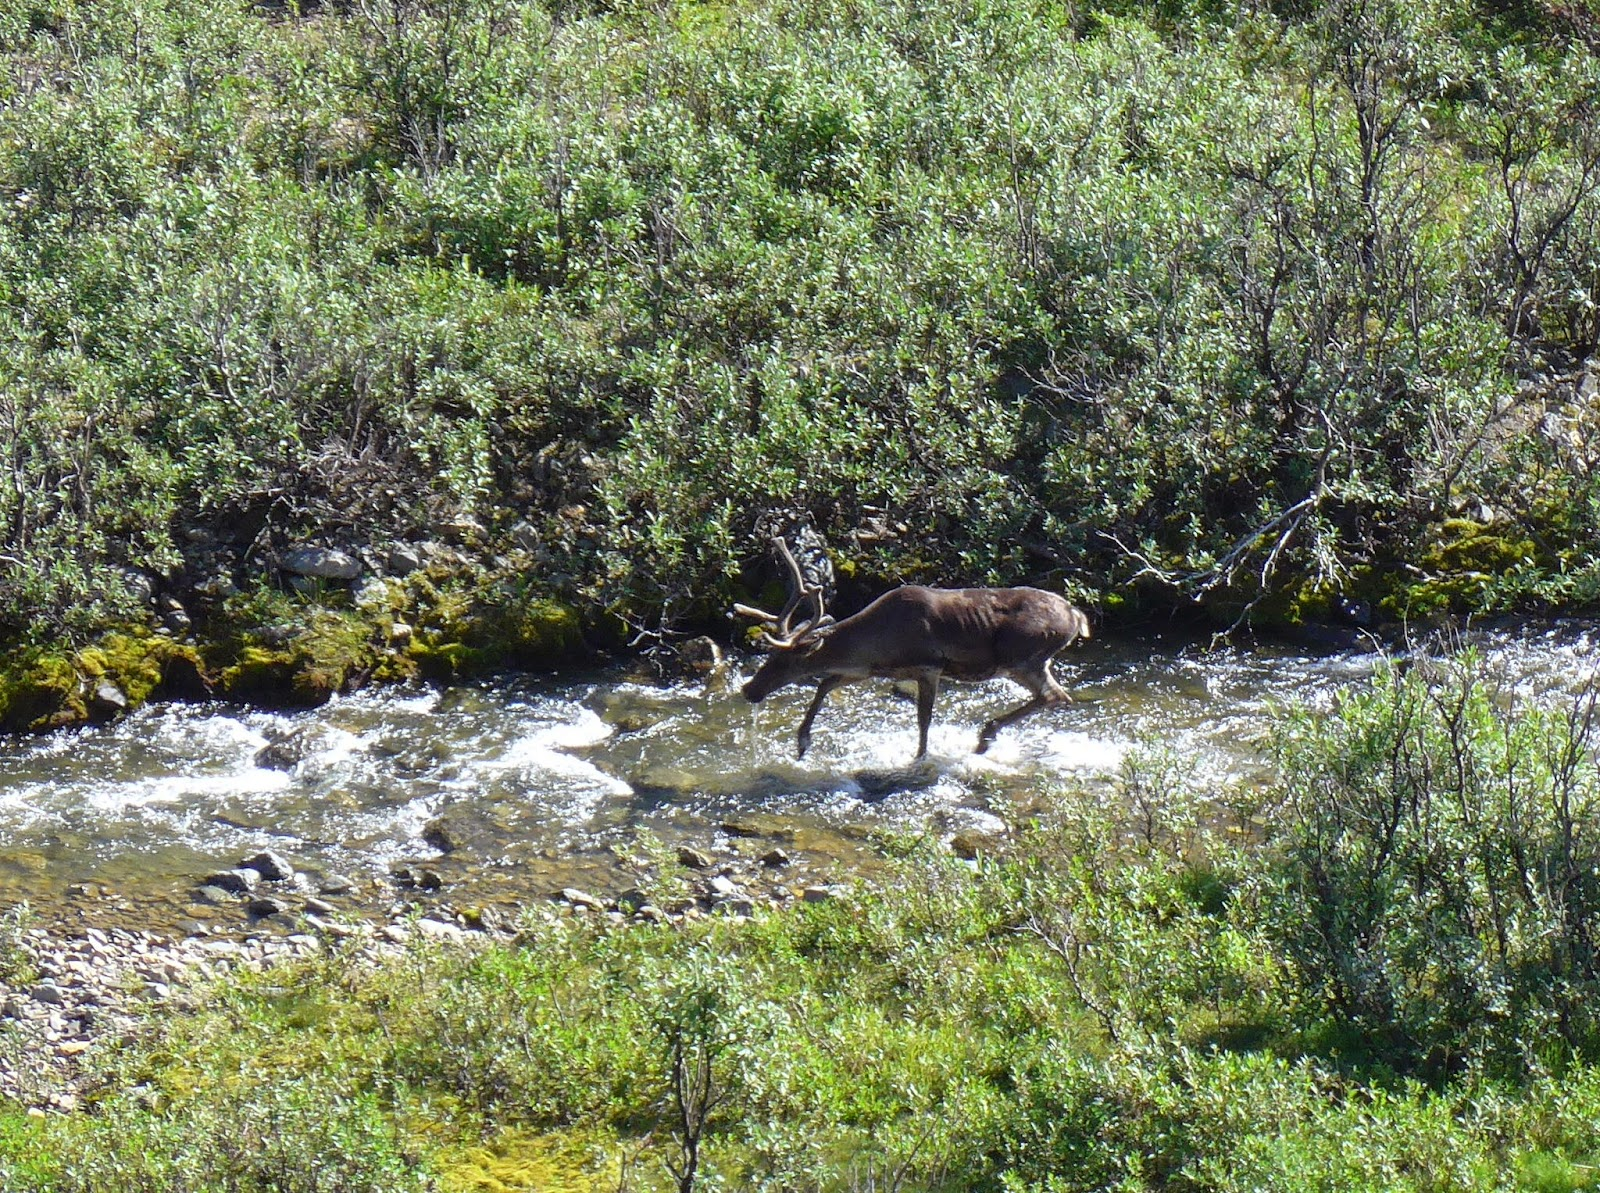 A Caribou running in the creek to get rid of some pesky Bugs